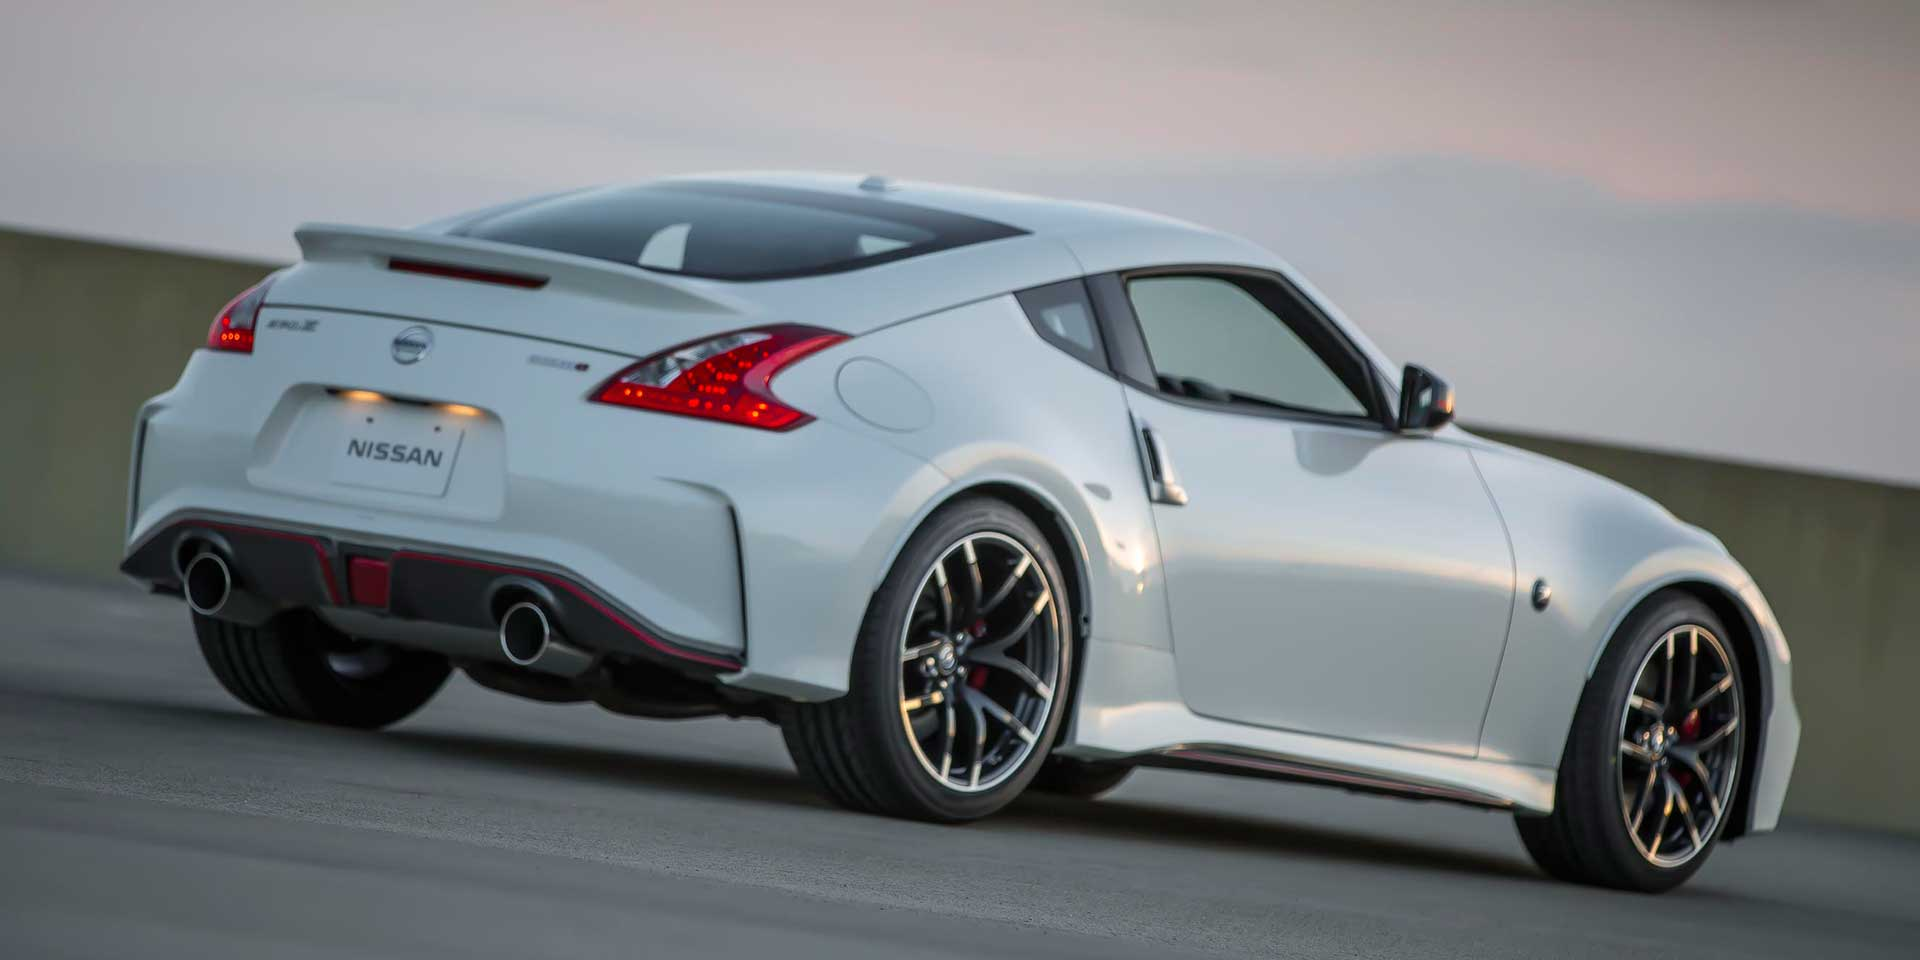 2017 Nissan 370z The Modern Interpretation Of A Clic Is Available In Coupe And Roadster Flavors With Convertible